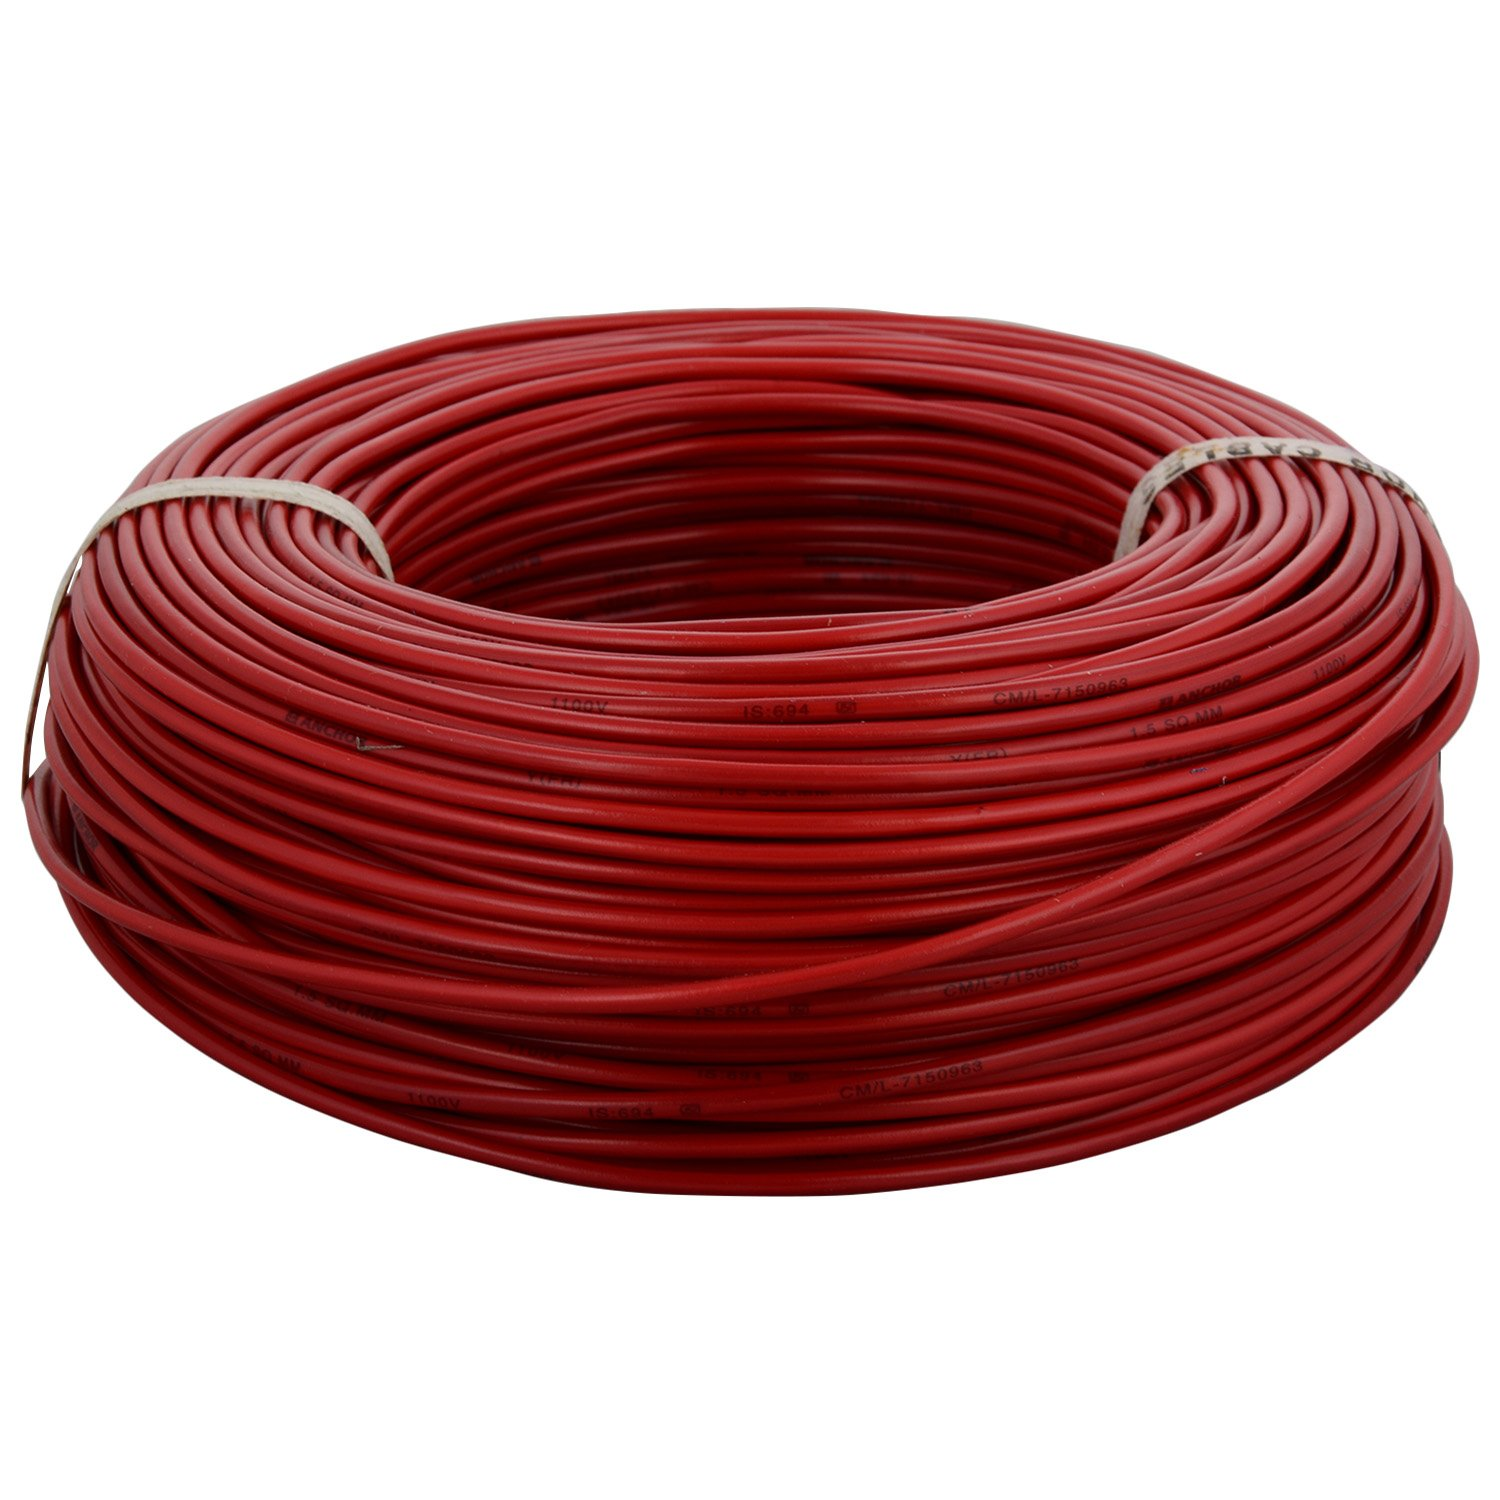 House Wiring In Telugu Diagram And Ebooks Ethernet Anchor Insulated Copper Pvc Cable Wire 1 5 Sq Mm Red Amazon Rh Videos Download Pdf